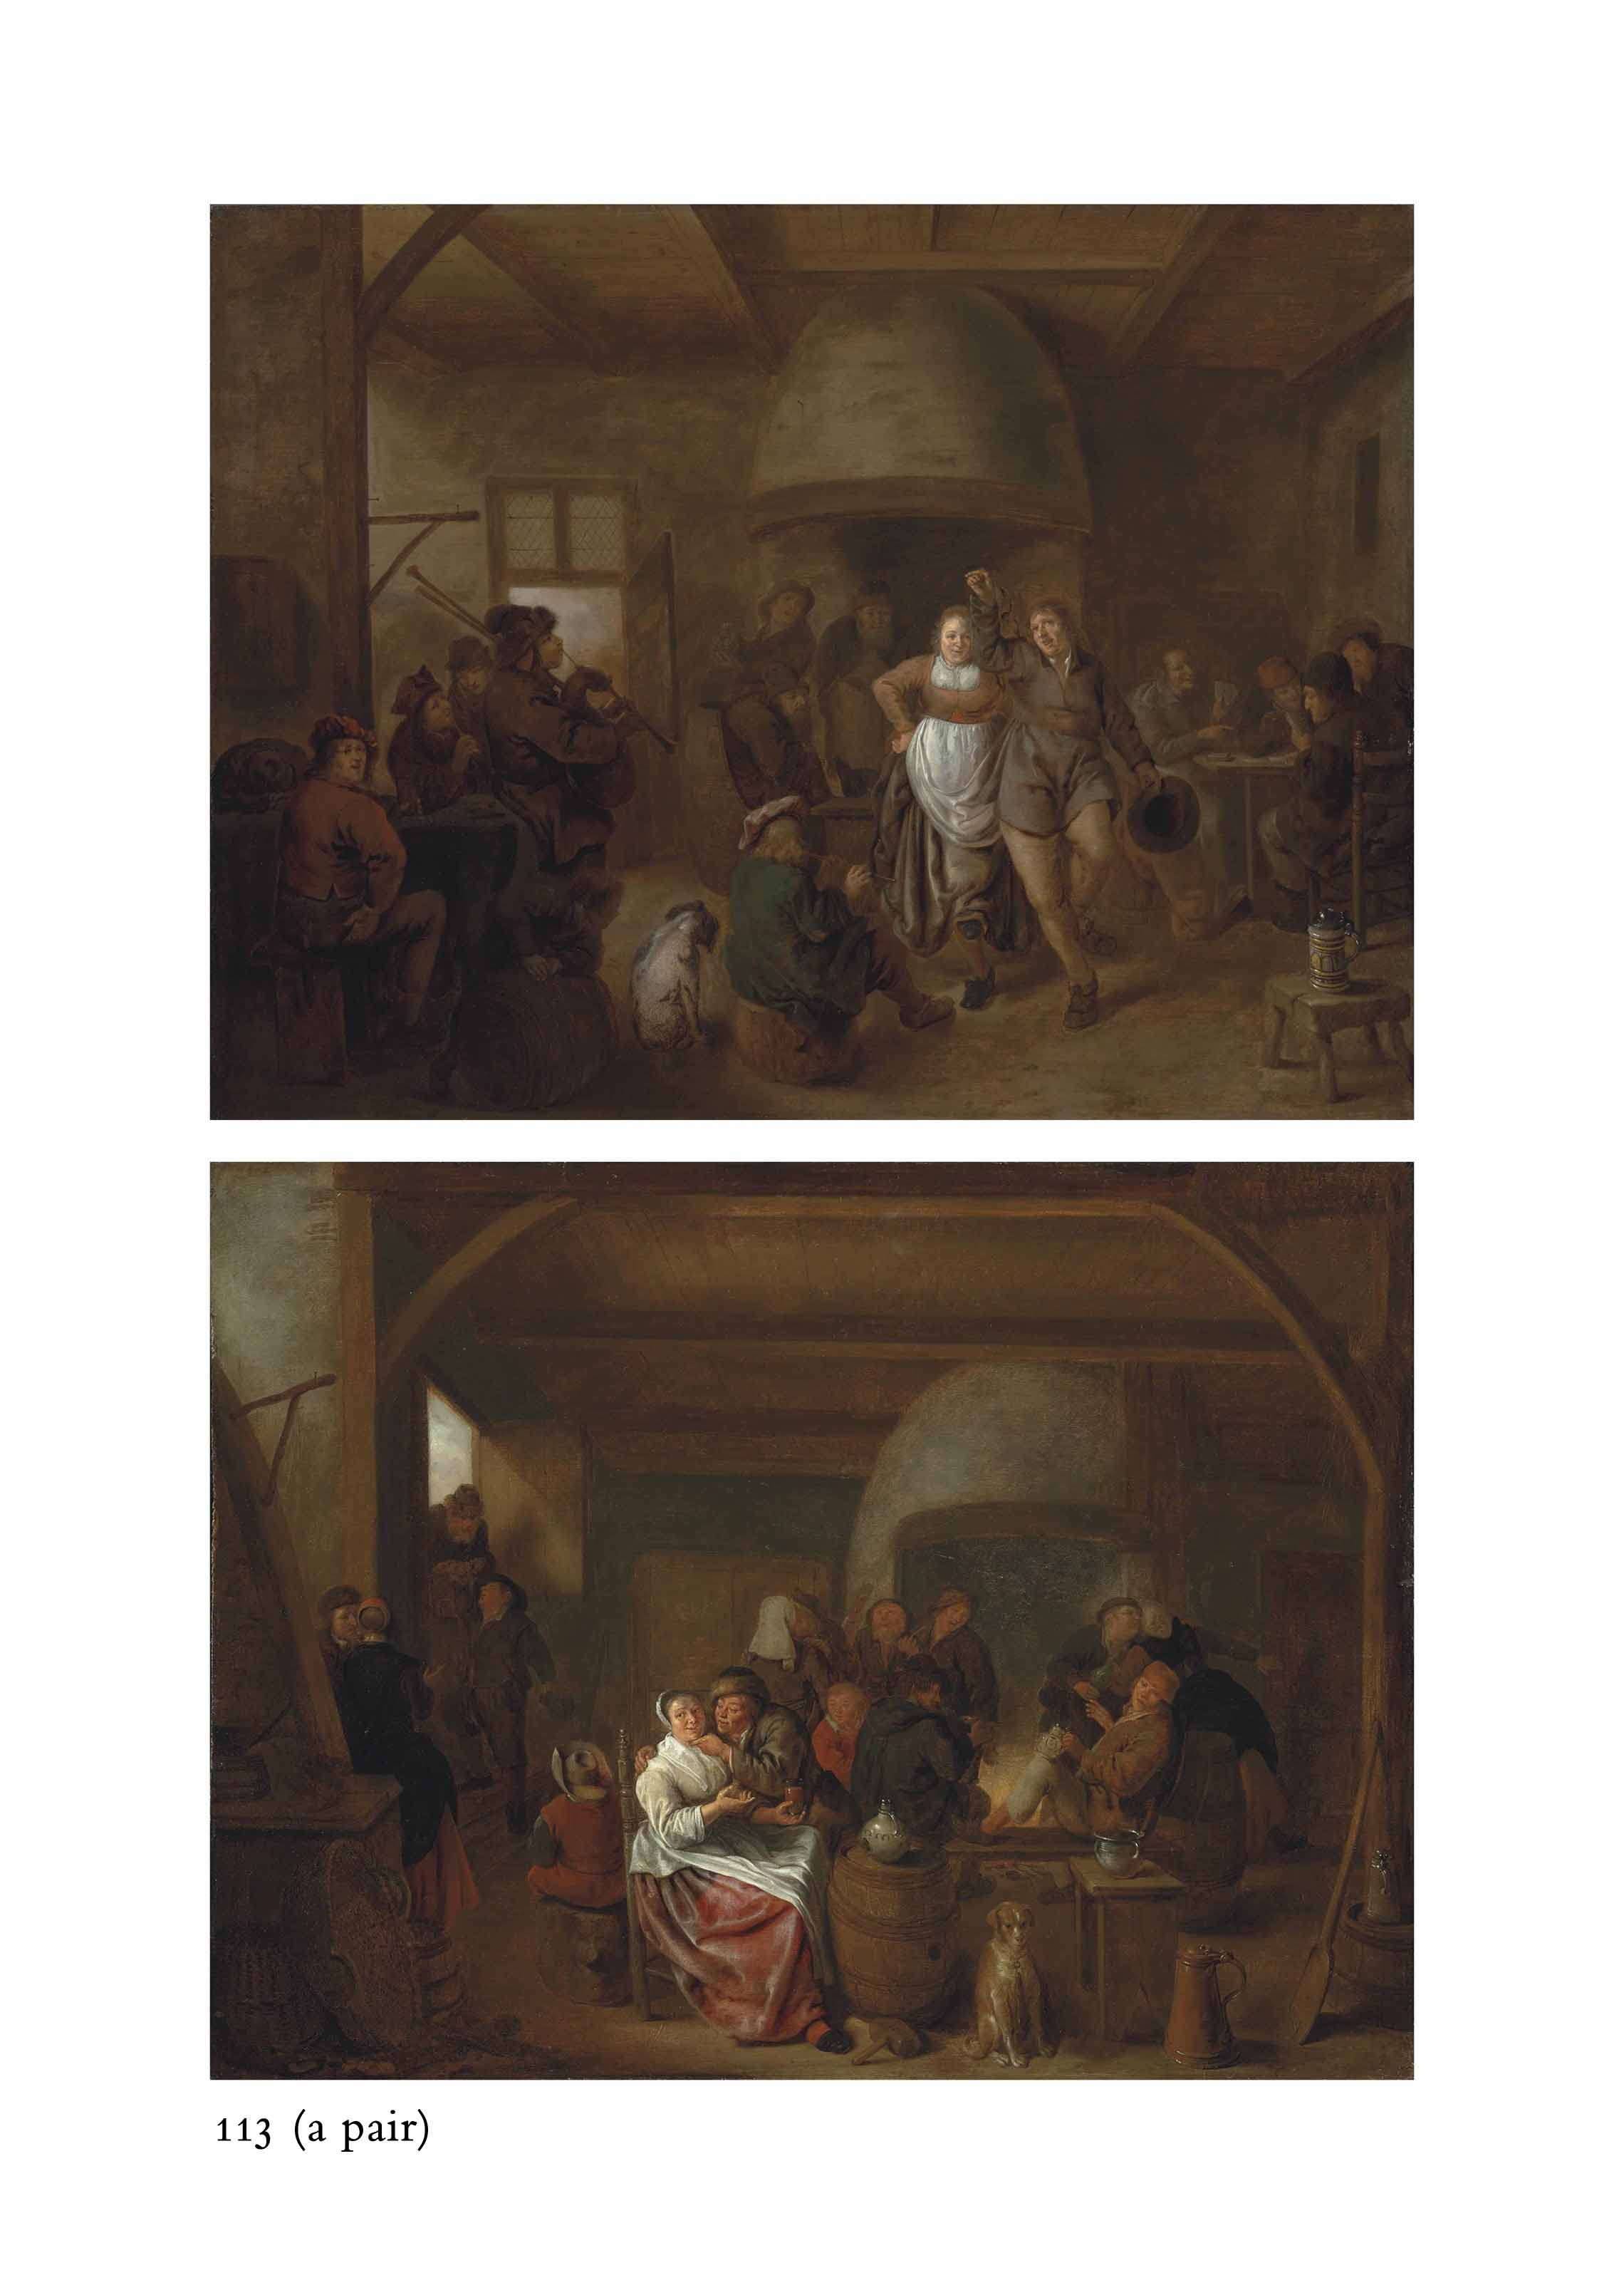 A tavern interior with a bagpiper, a couple dancing, and figures playing cards; and A tavern interior with figures merrymaking and carousing